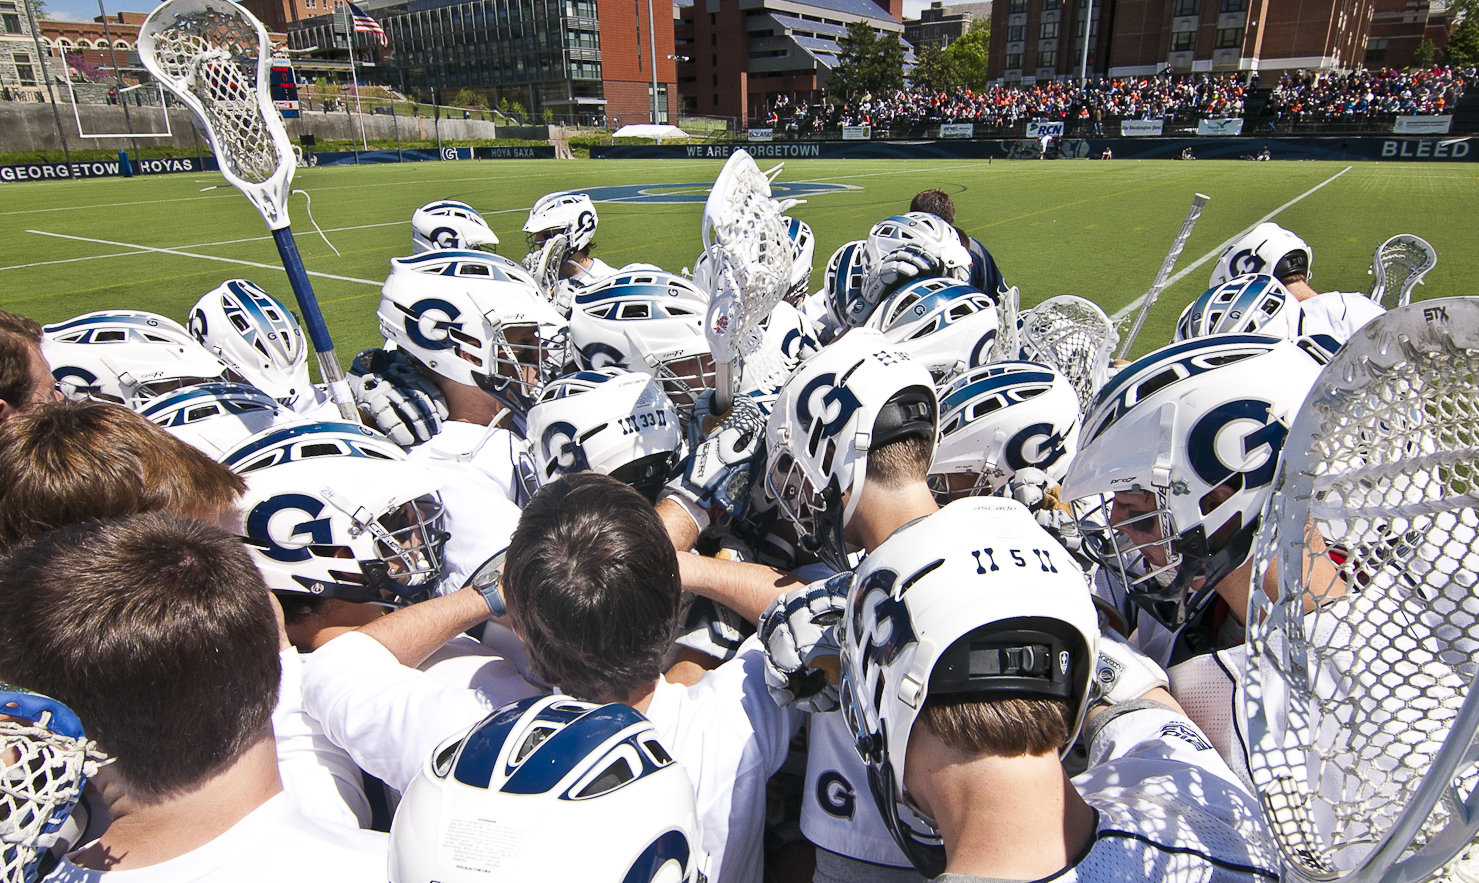 Georgetown's scrimmage has been moved to Johns Hopkins.